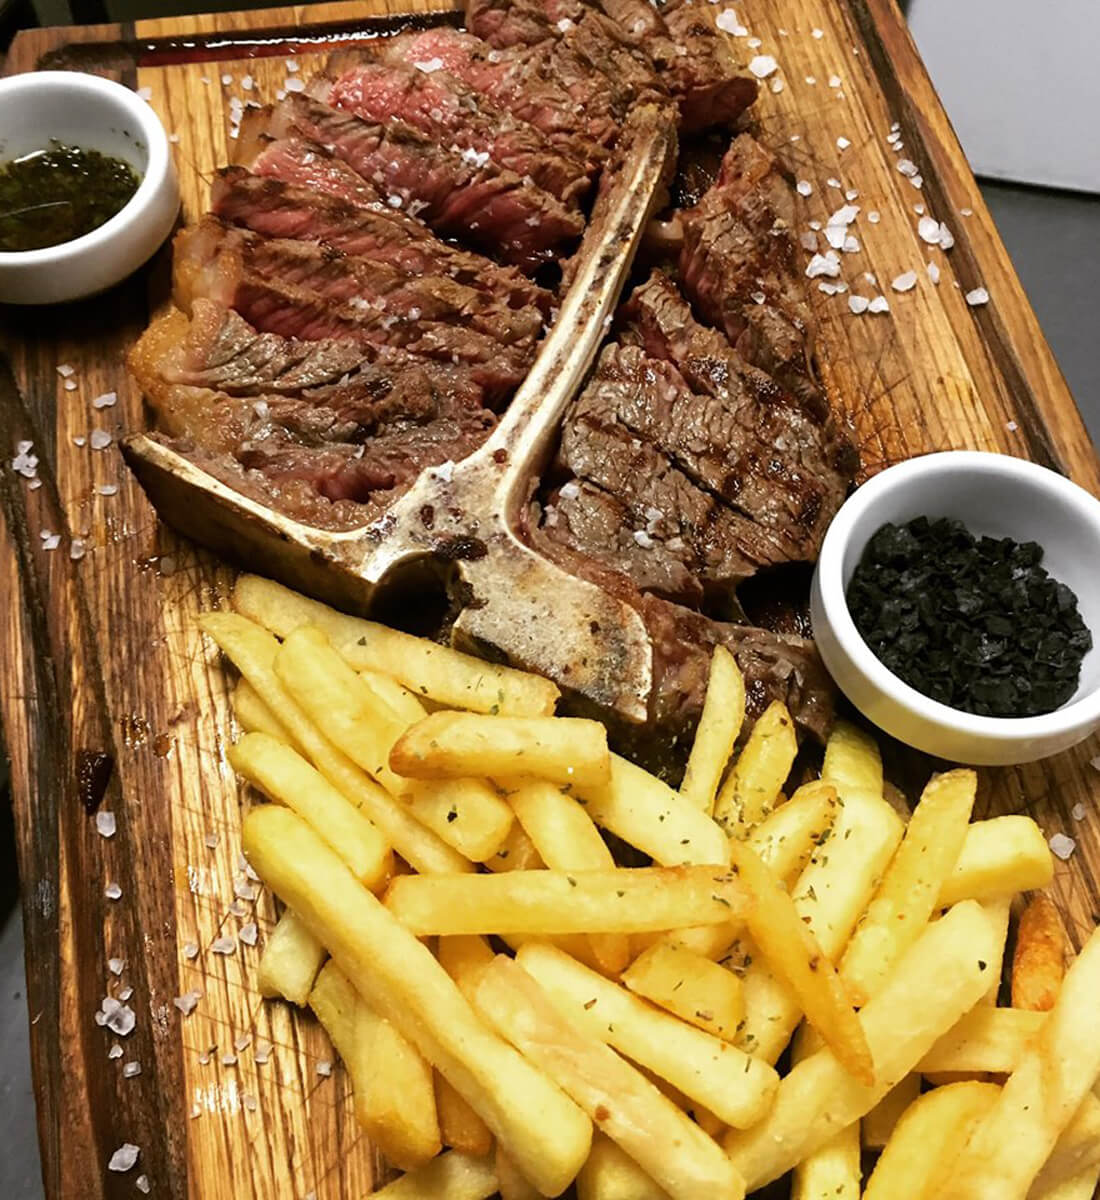 Picanha meat and more - εικόνα 6